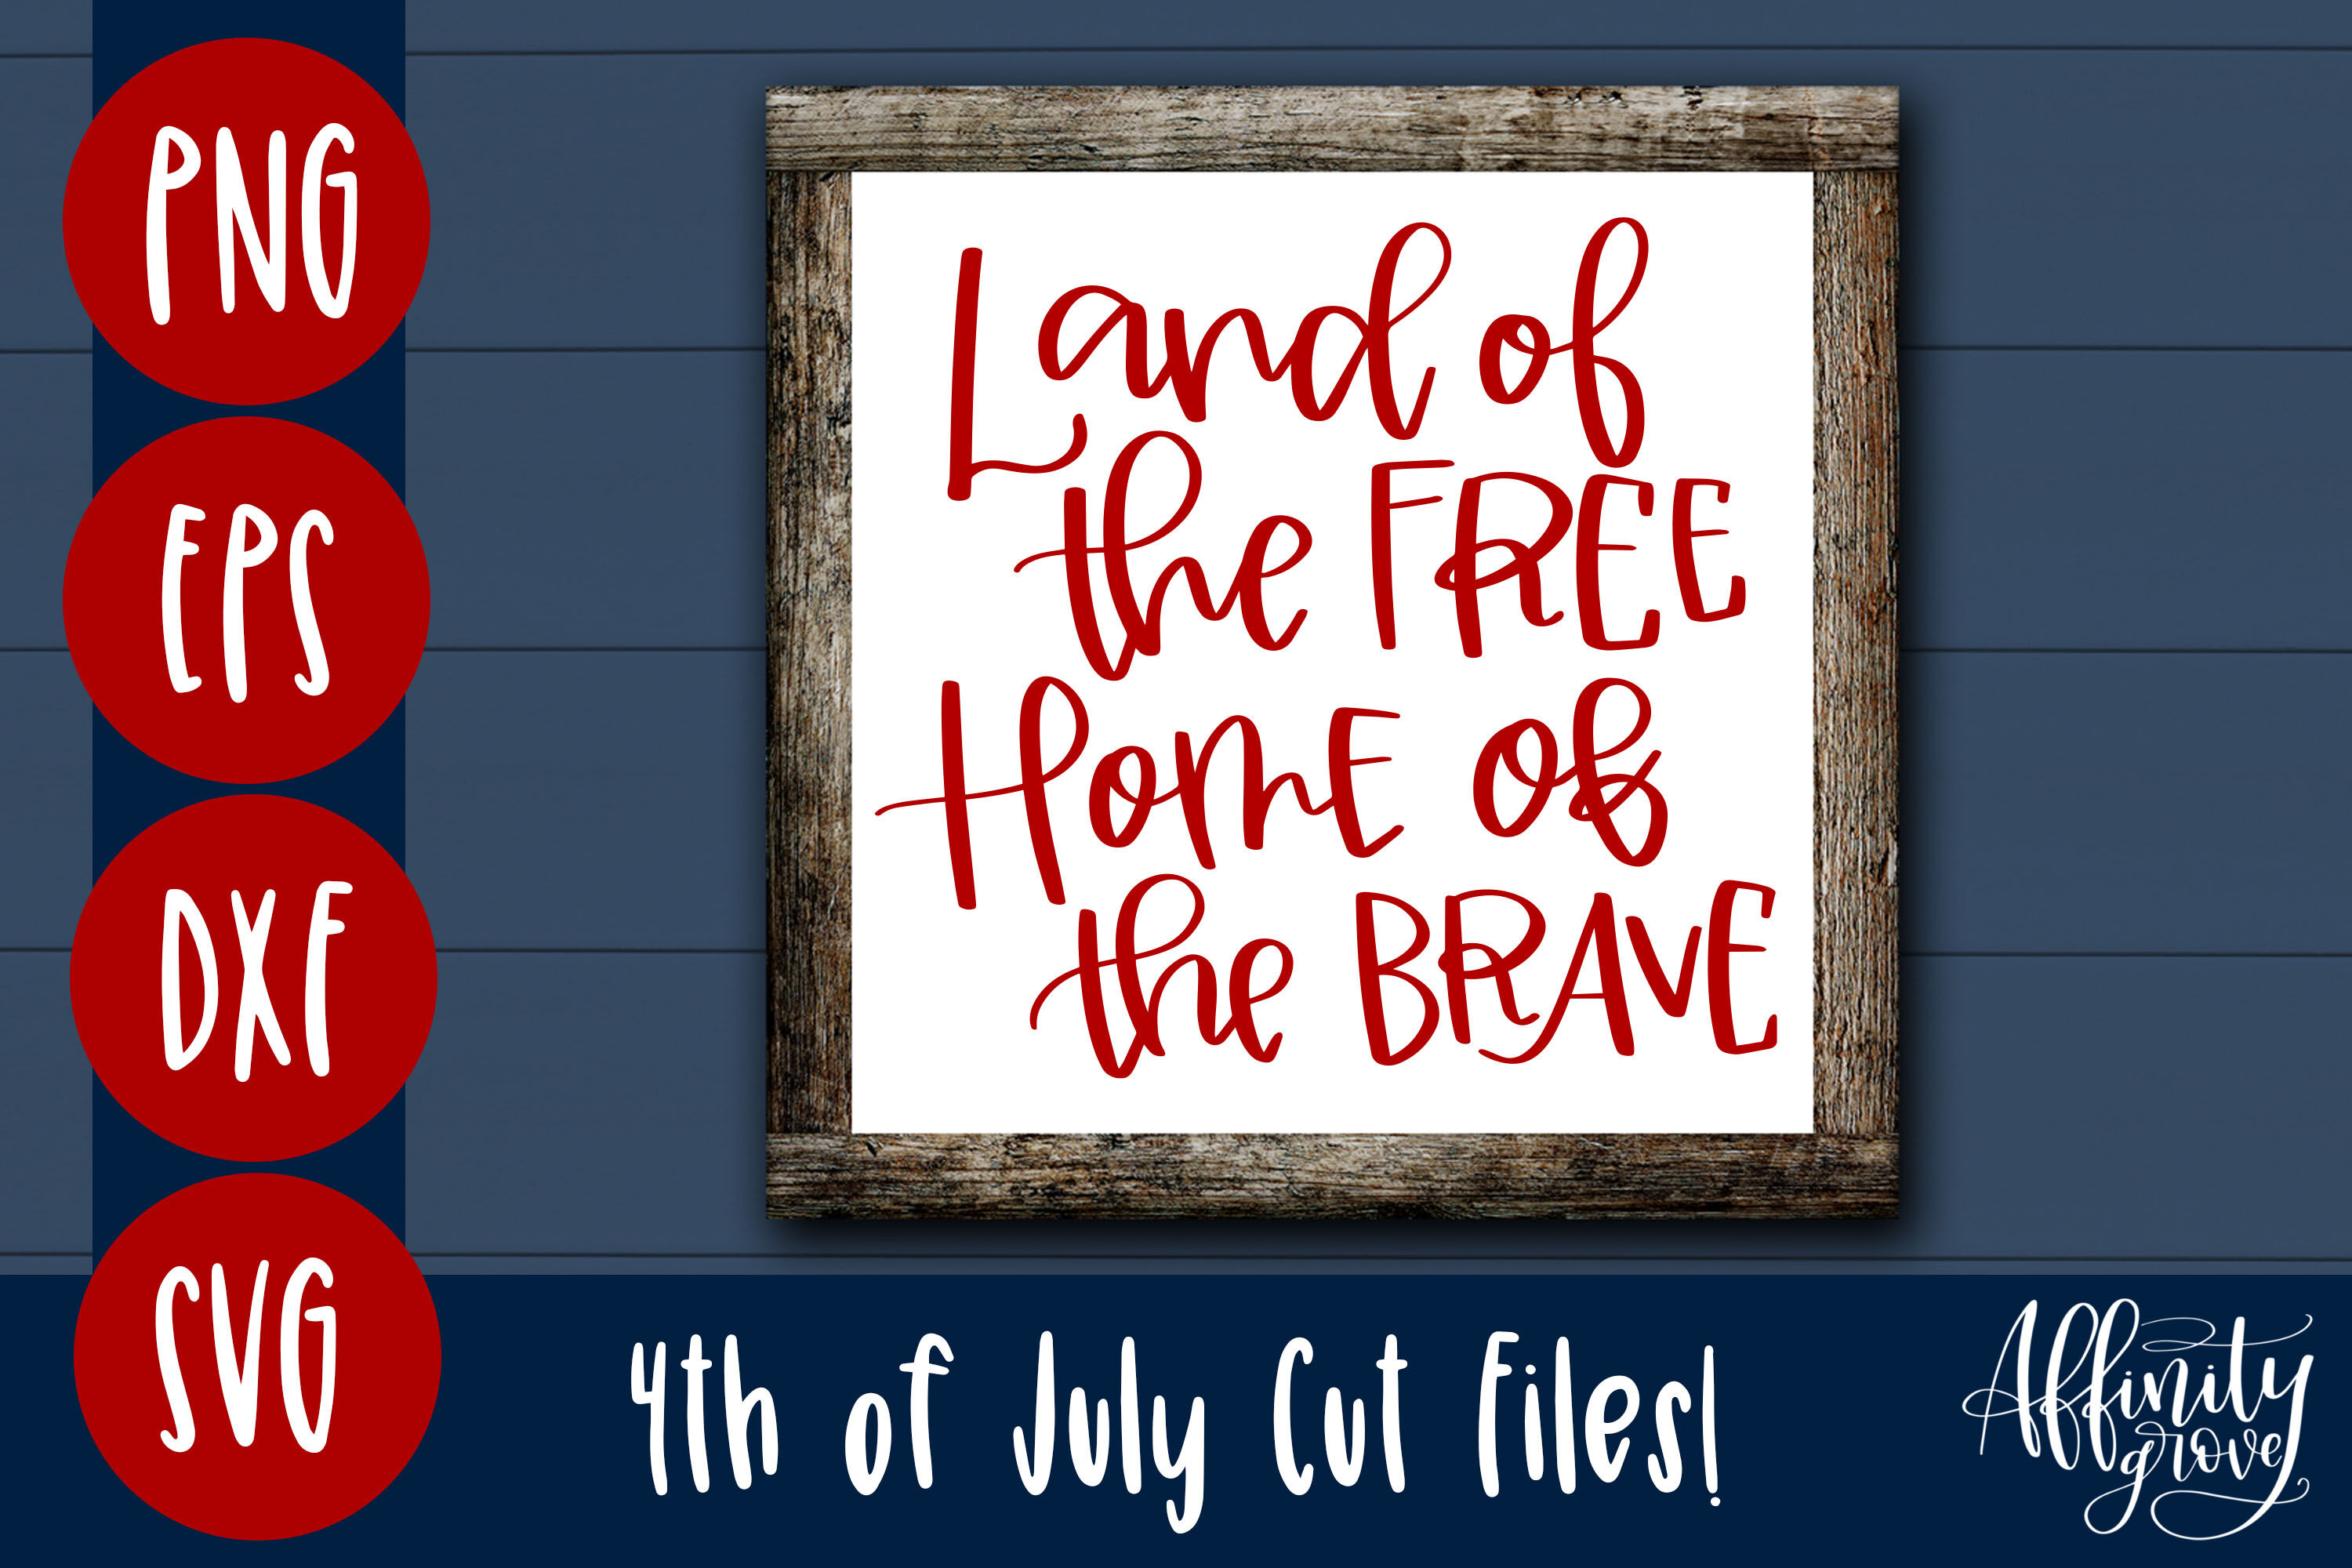 Land Of The Free Home Of The Brave Svg Cut File By Affinity Grove Thehungryjpeg Com